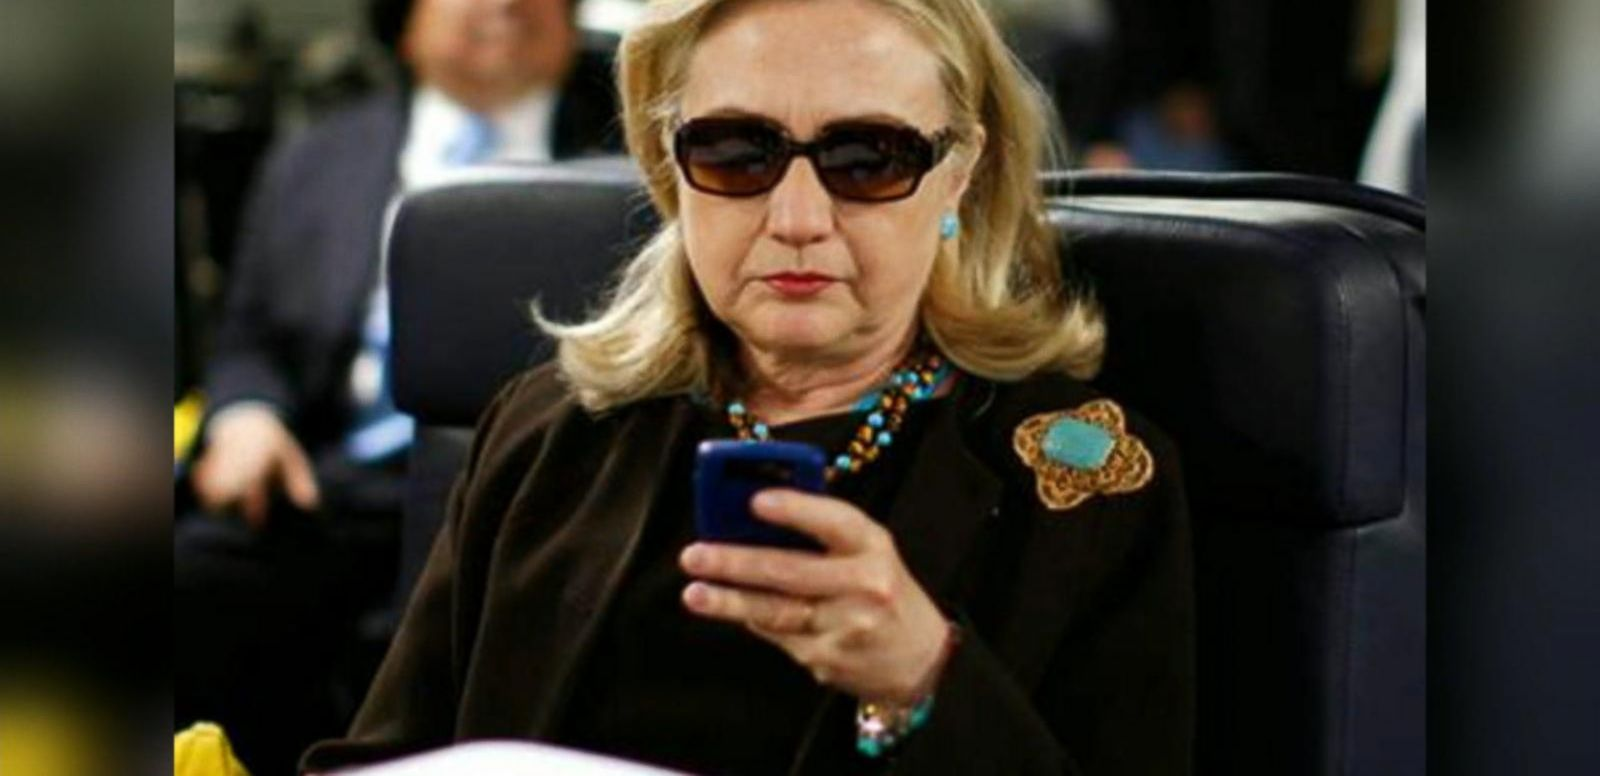 VIDEO: Hillary Clinton's Use of Private Email at State Department Causes Firestorm